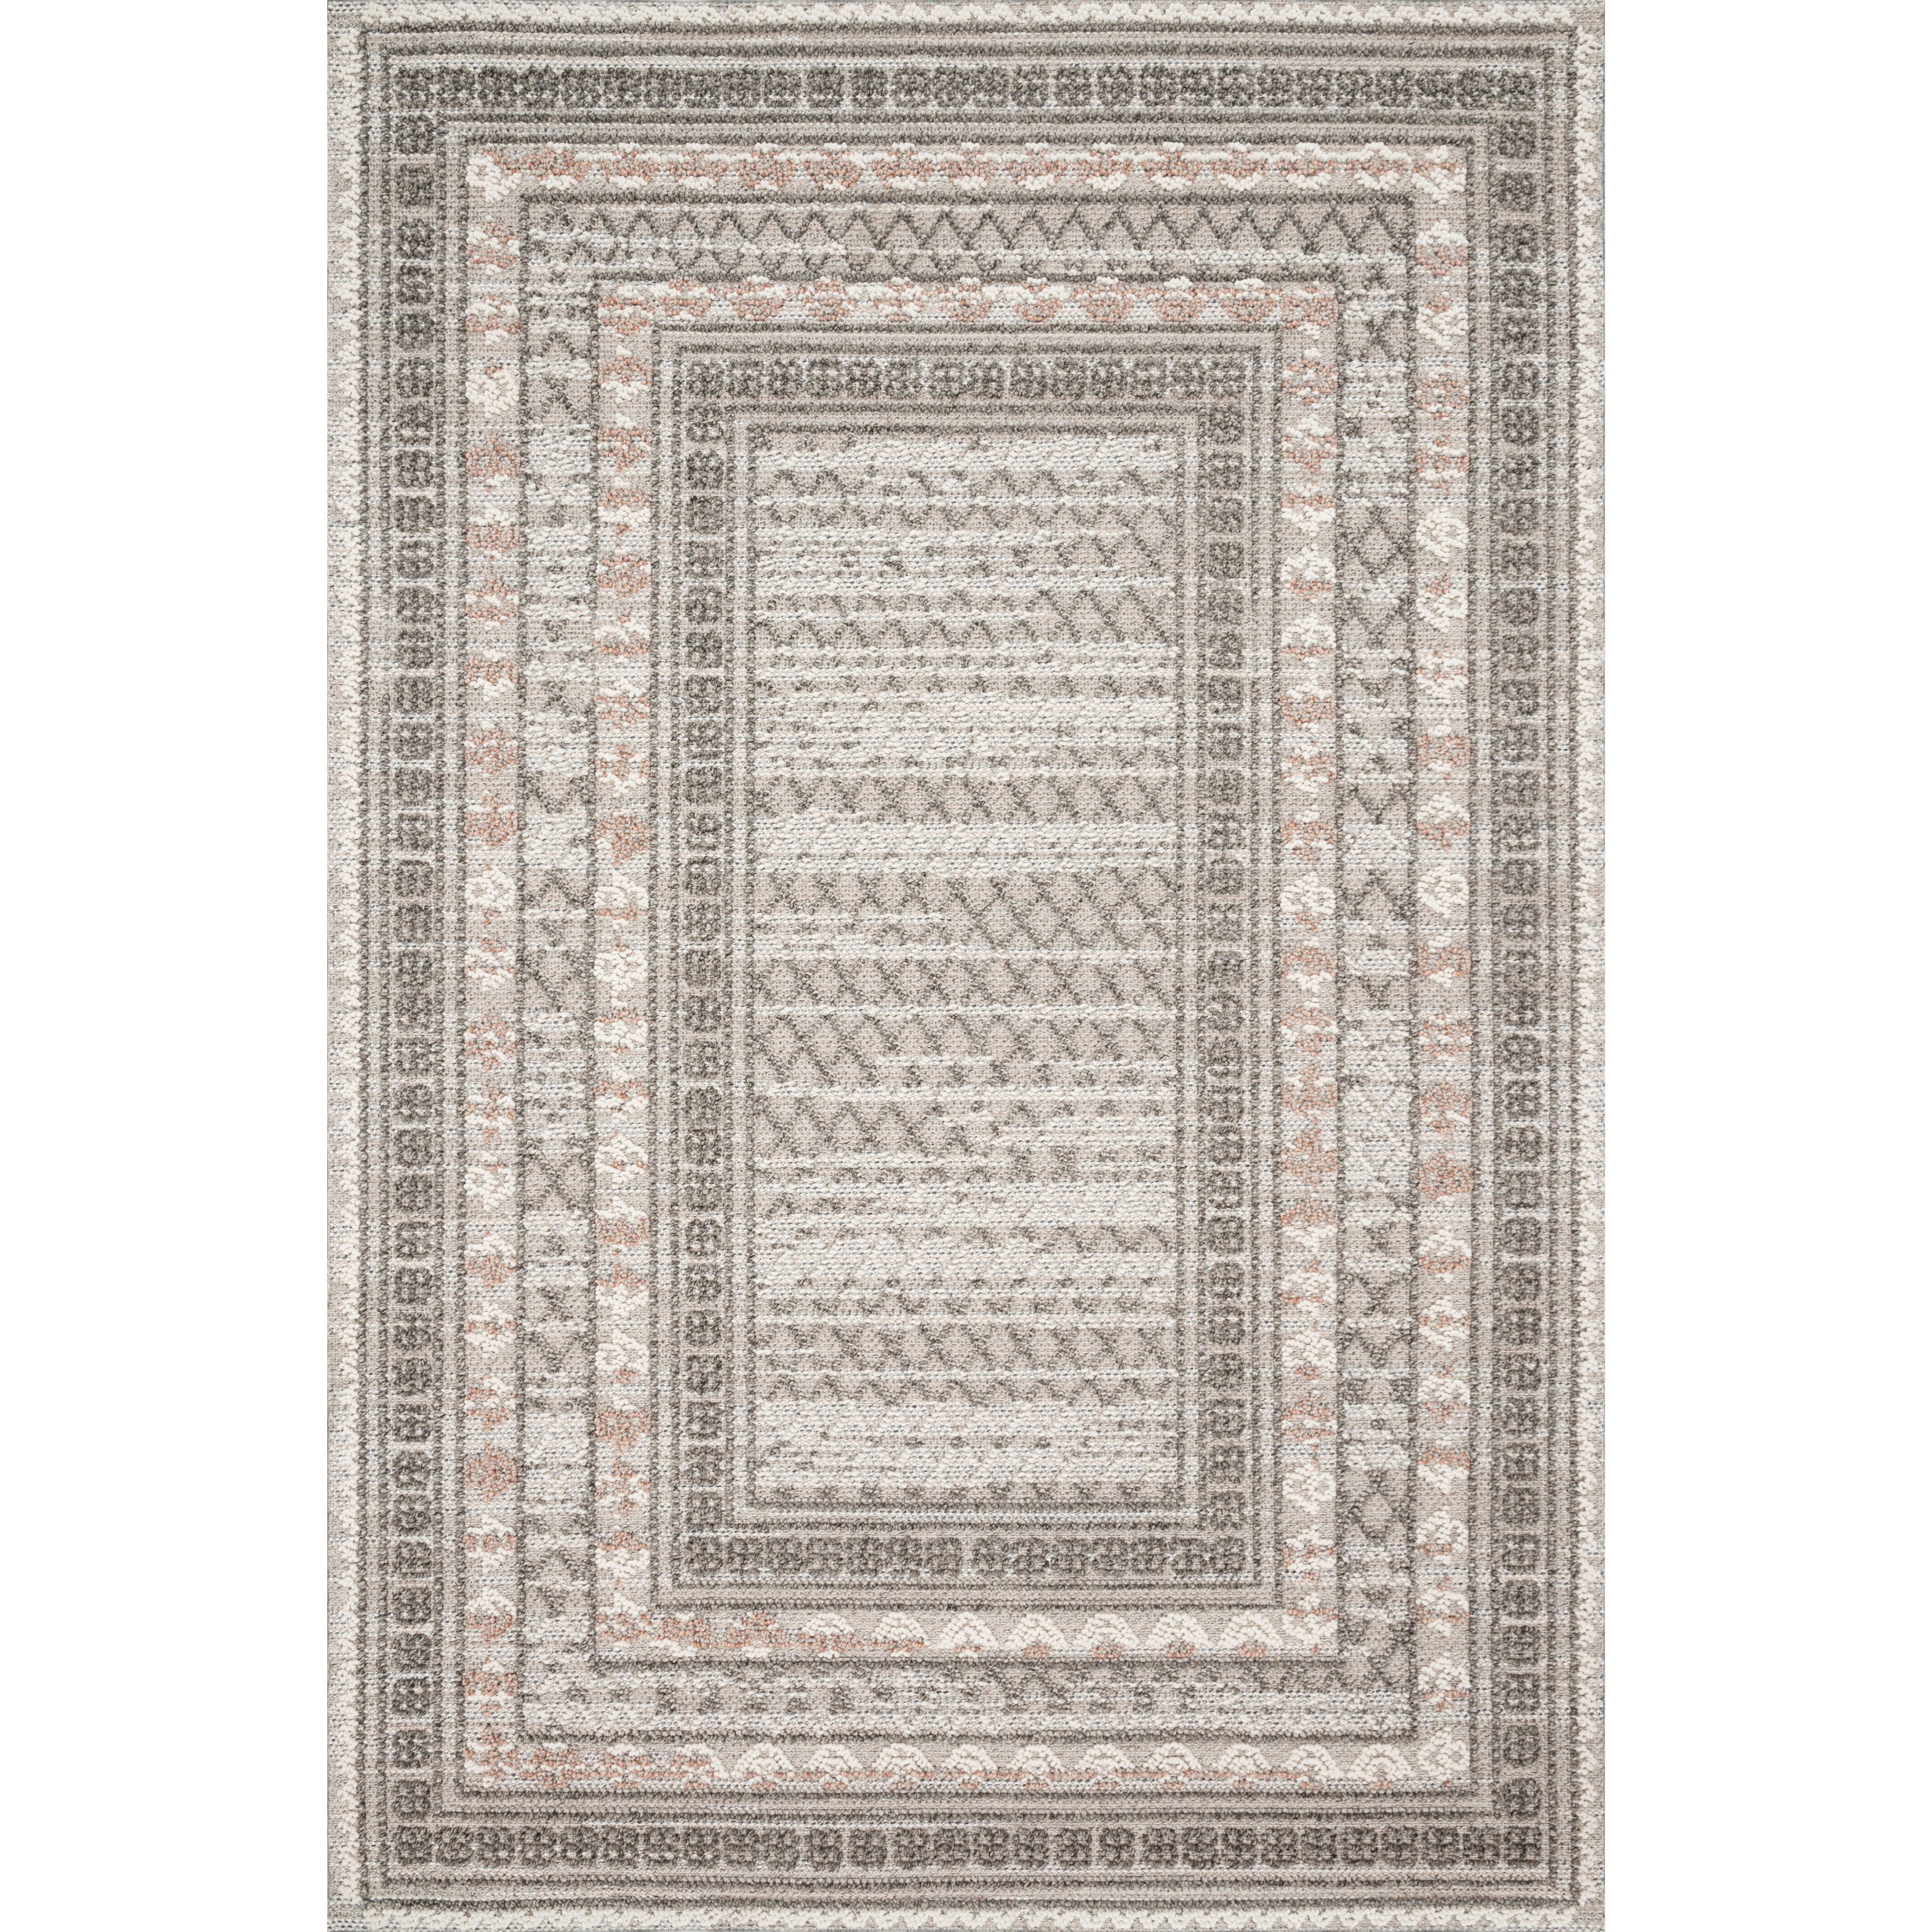 "Cole 2'2"" x 5'9"" Grey / Multi Rug by Loloi Rugs at Virginia Furniture Market"